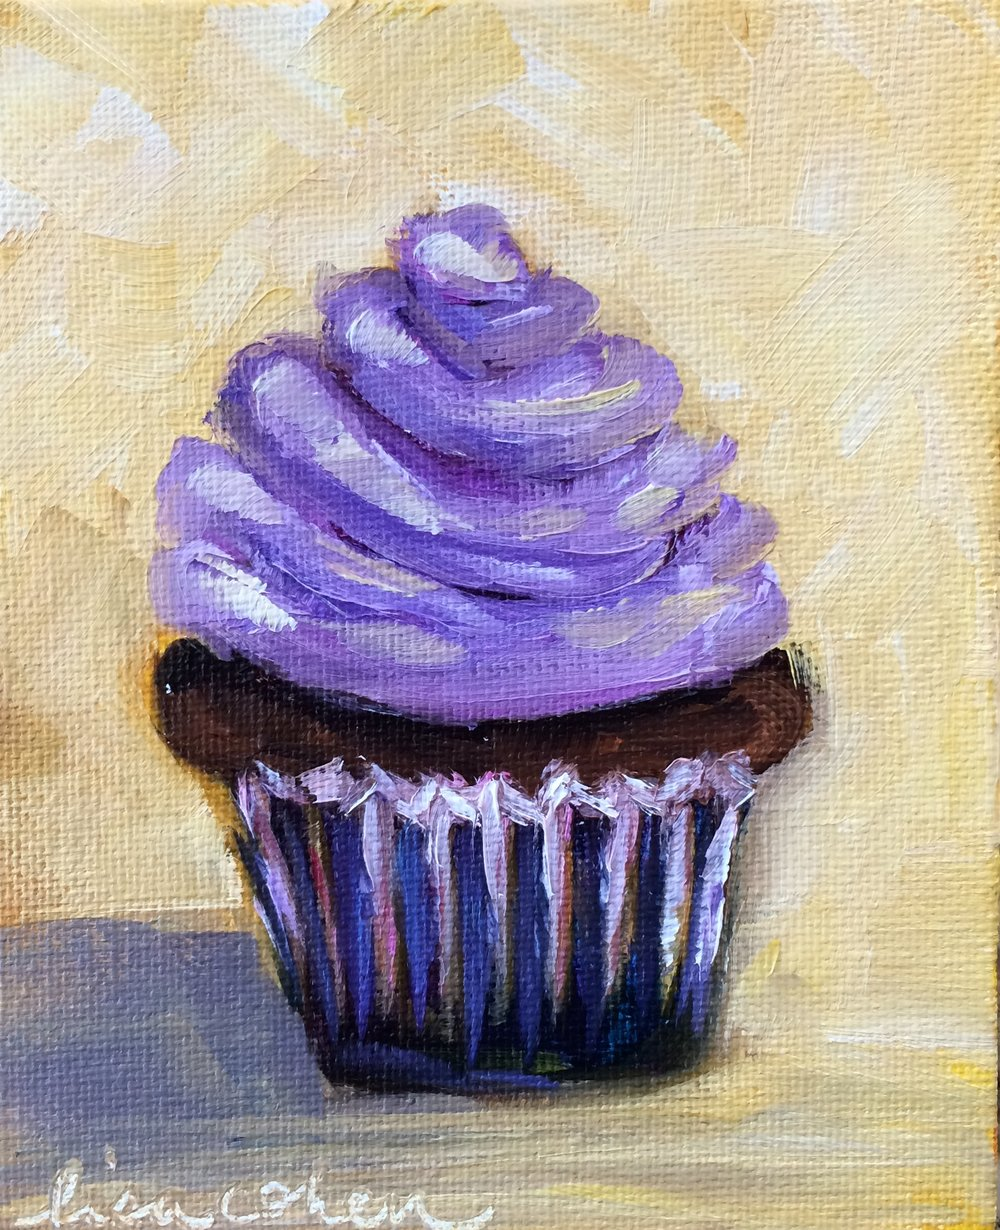 101 Iced Lavender - 4x5 oil on canvas panel - Expressive Cupcake - Lisa Cohen Daily Painting.jpg